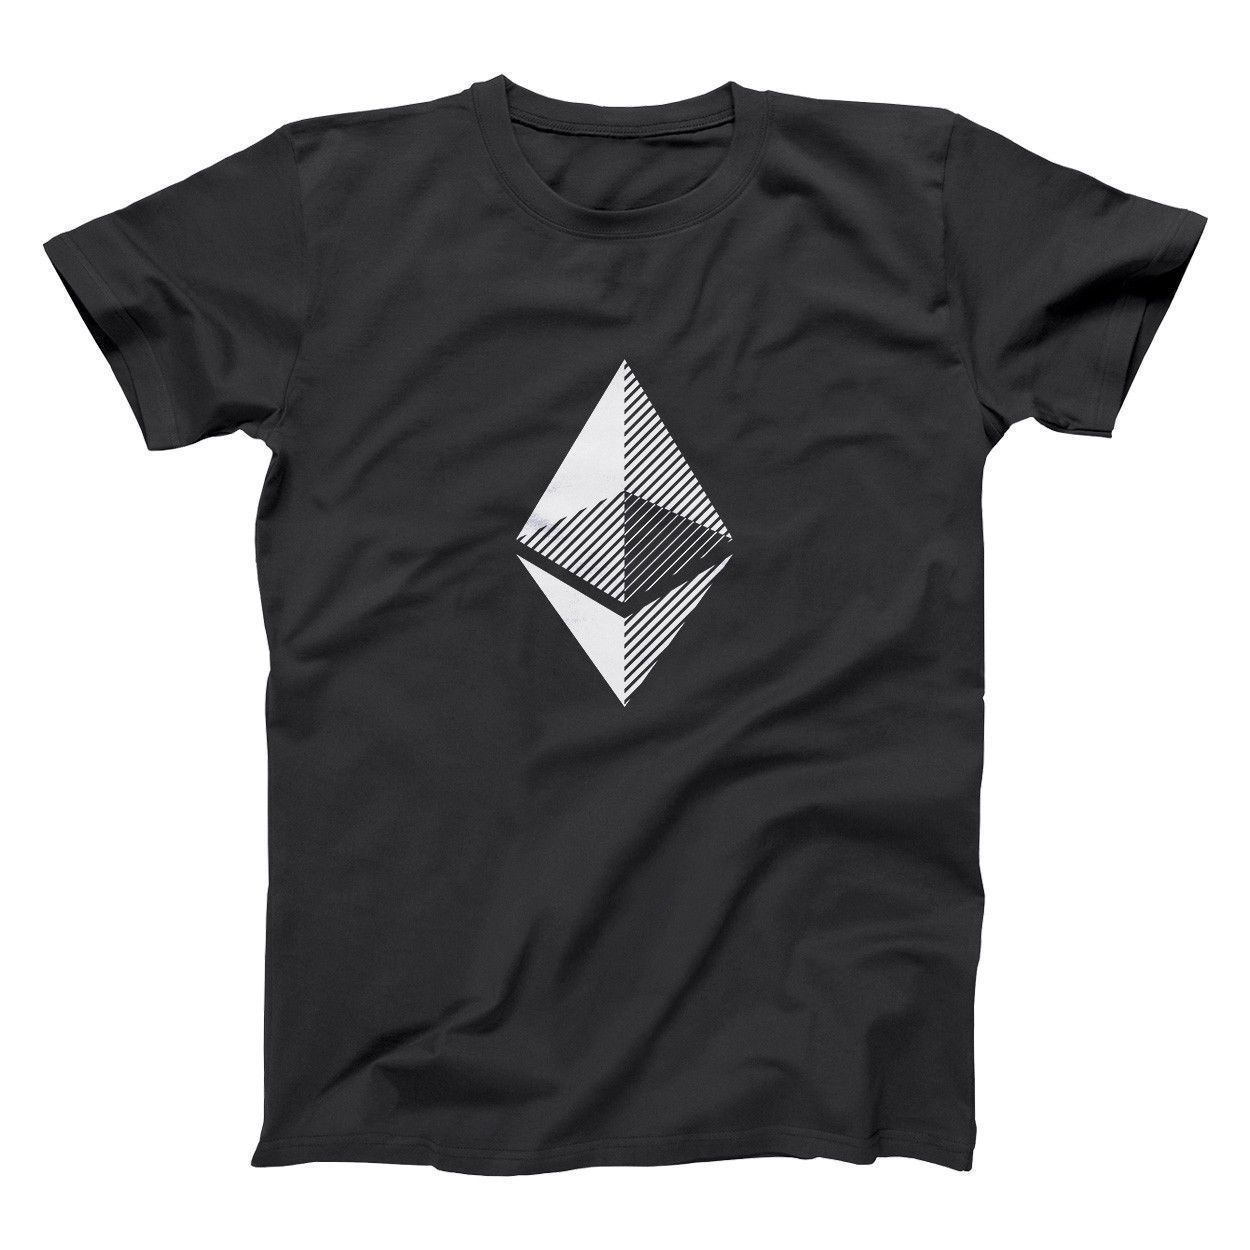 Ethereum Cryptocurreny Bitcoin Mining Miner Geek T-Shirt Summer Mens Print T Shirt Short Sleeves 100% Cotton